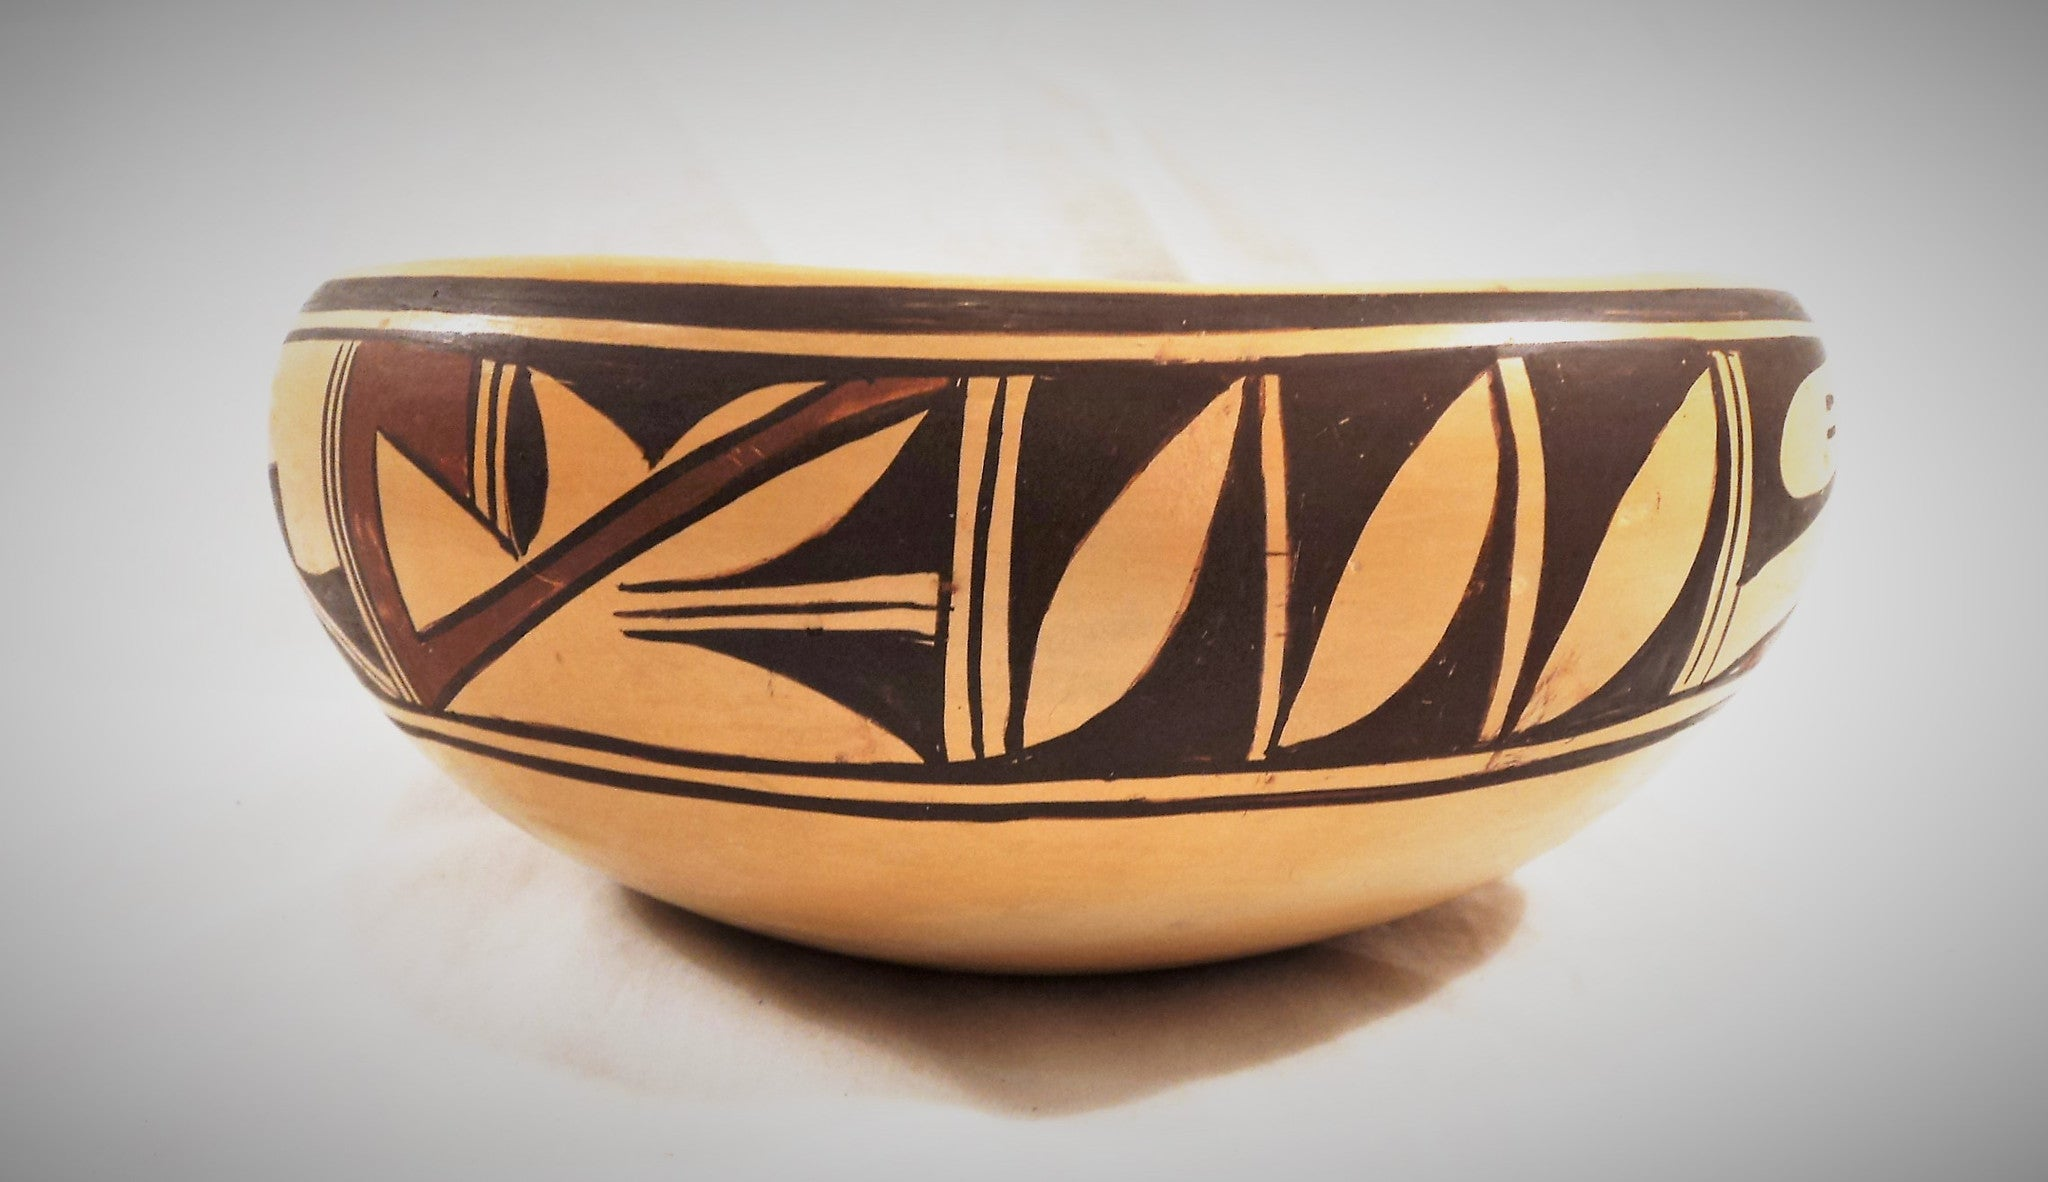 Hopi Ceramic Pottery Bowl by Olive Toney